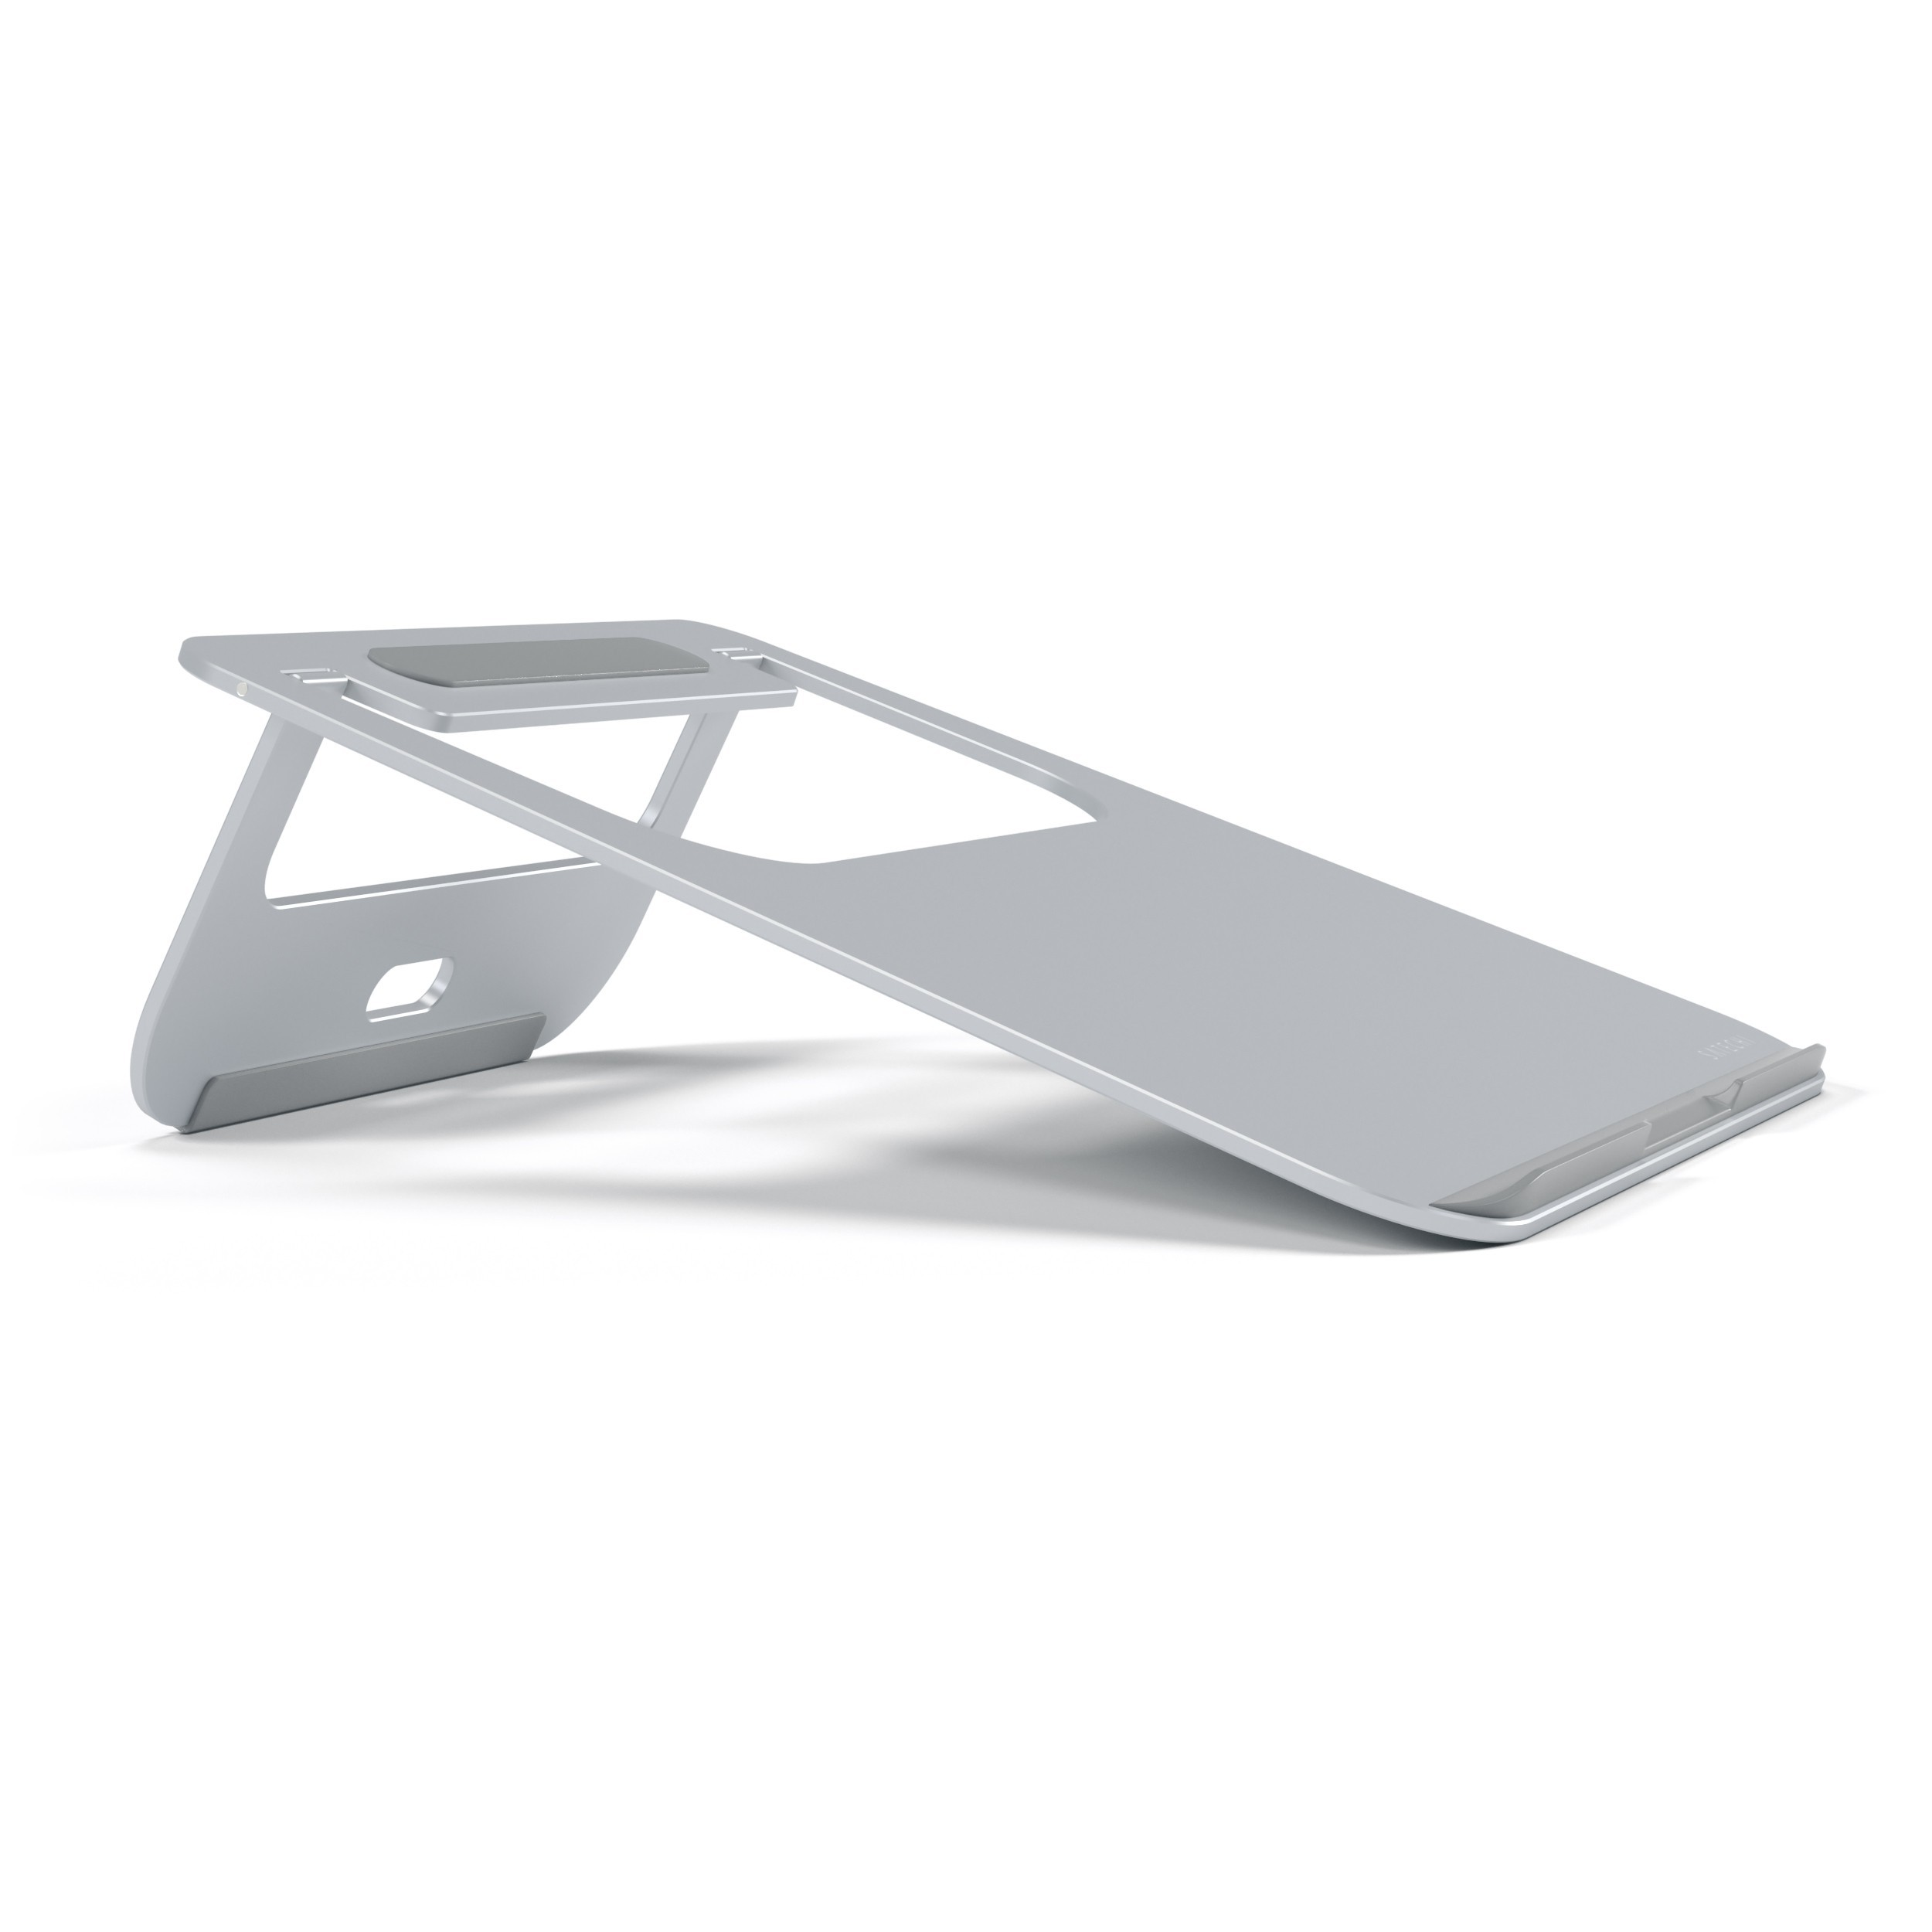 Satechi Lightweight Aluminum Portable Laptop Stand for Laptops, Notebooks, and Tablets - Silver, ST-ALTS